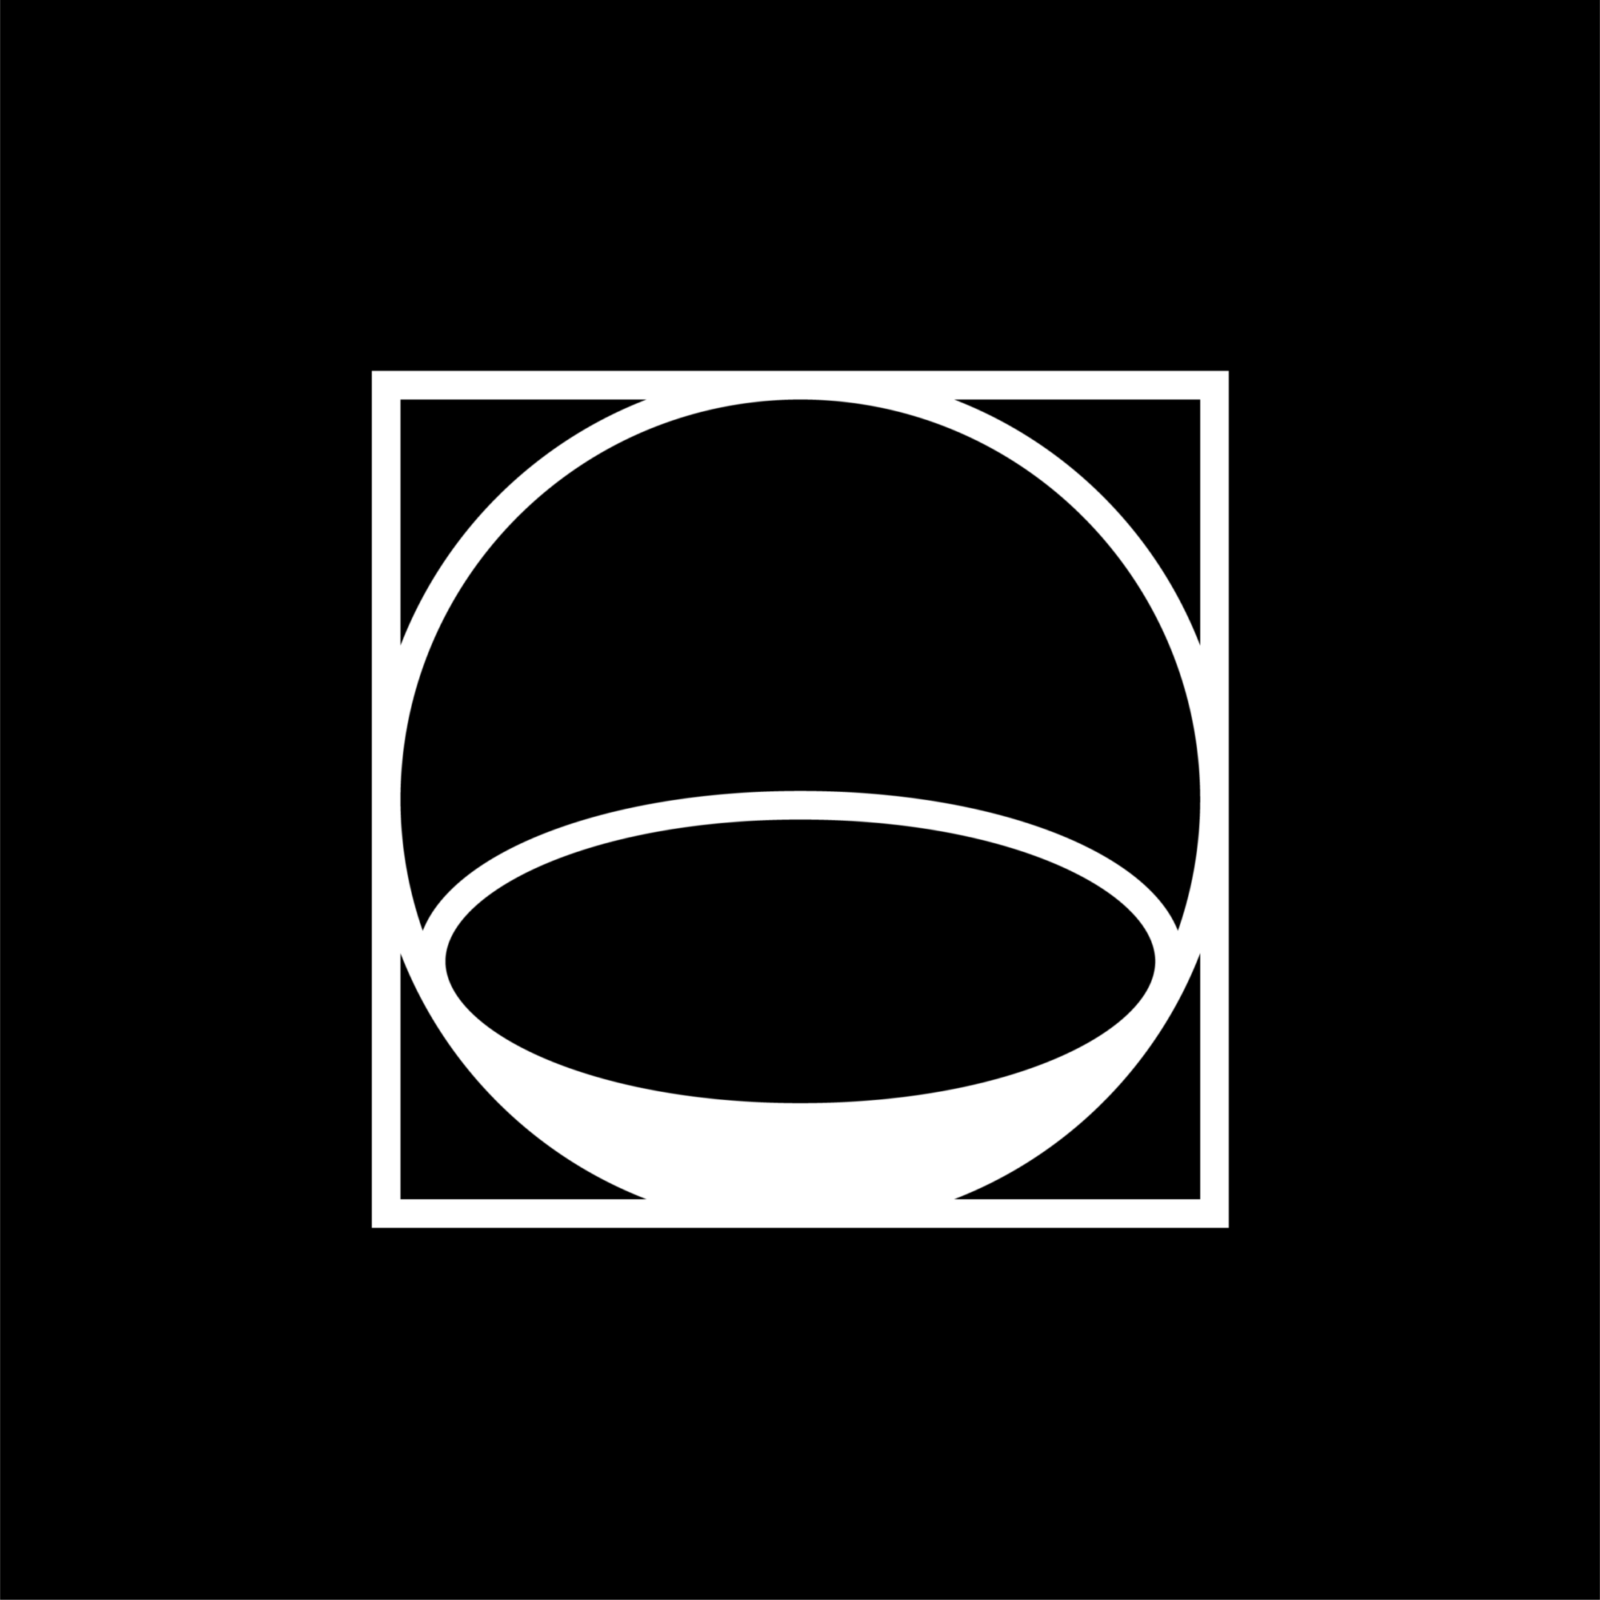 Ekho Collective's logo with black background and white circles inside a box